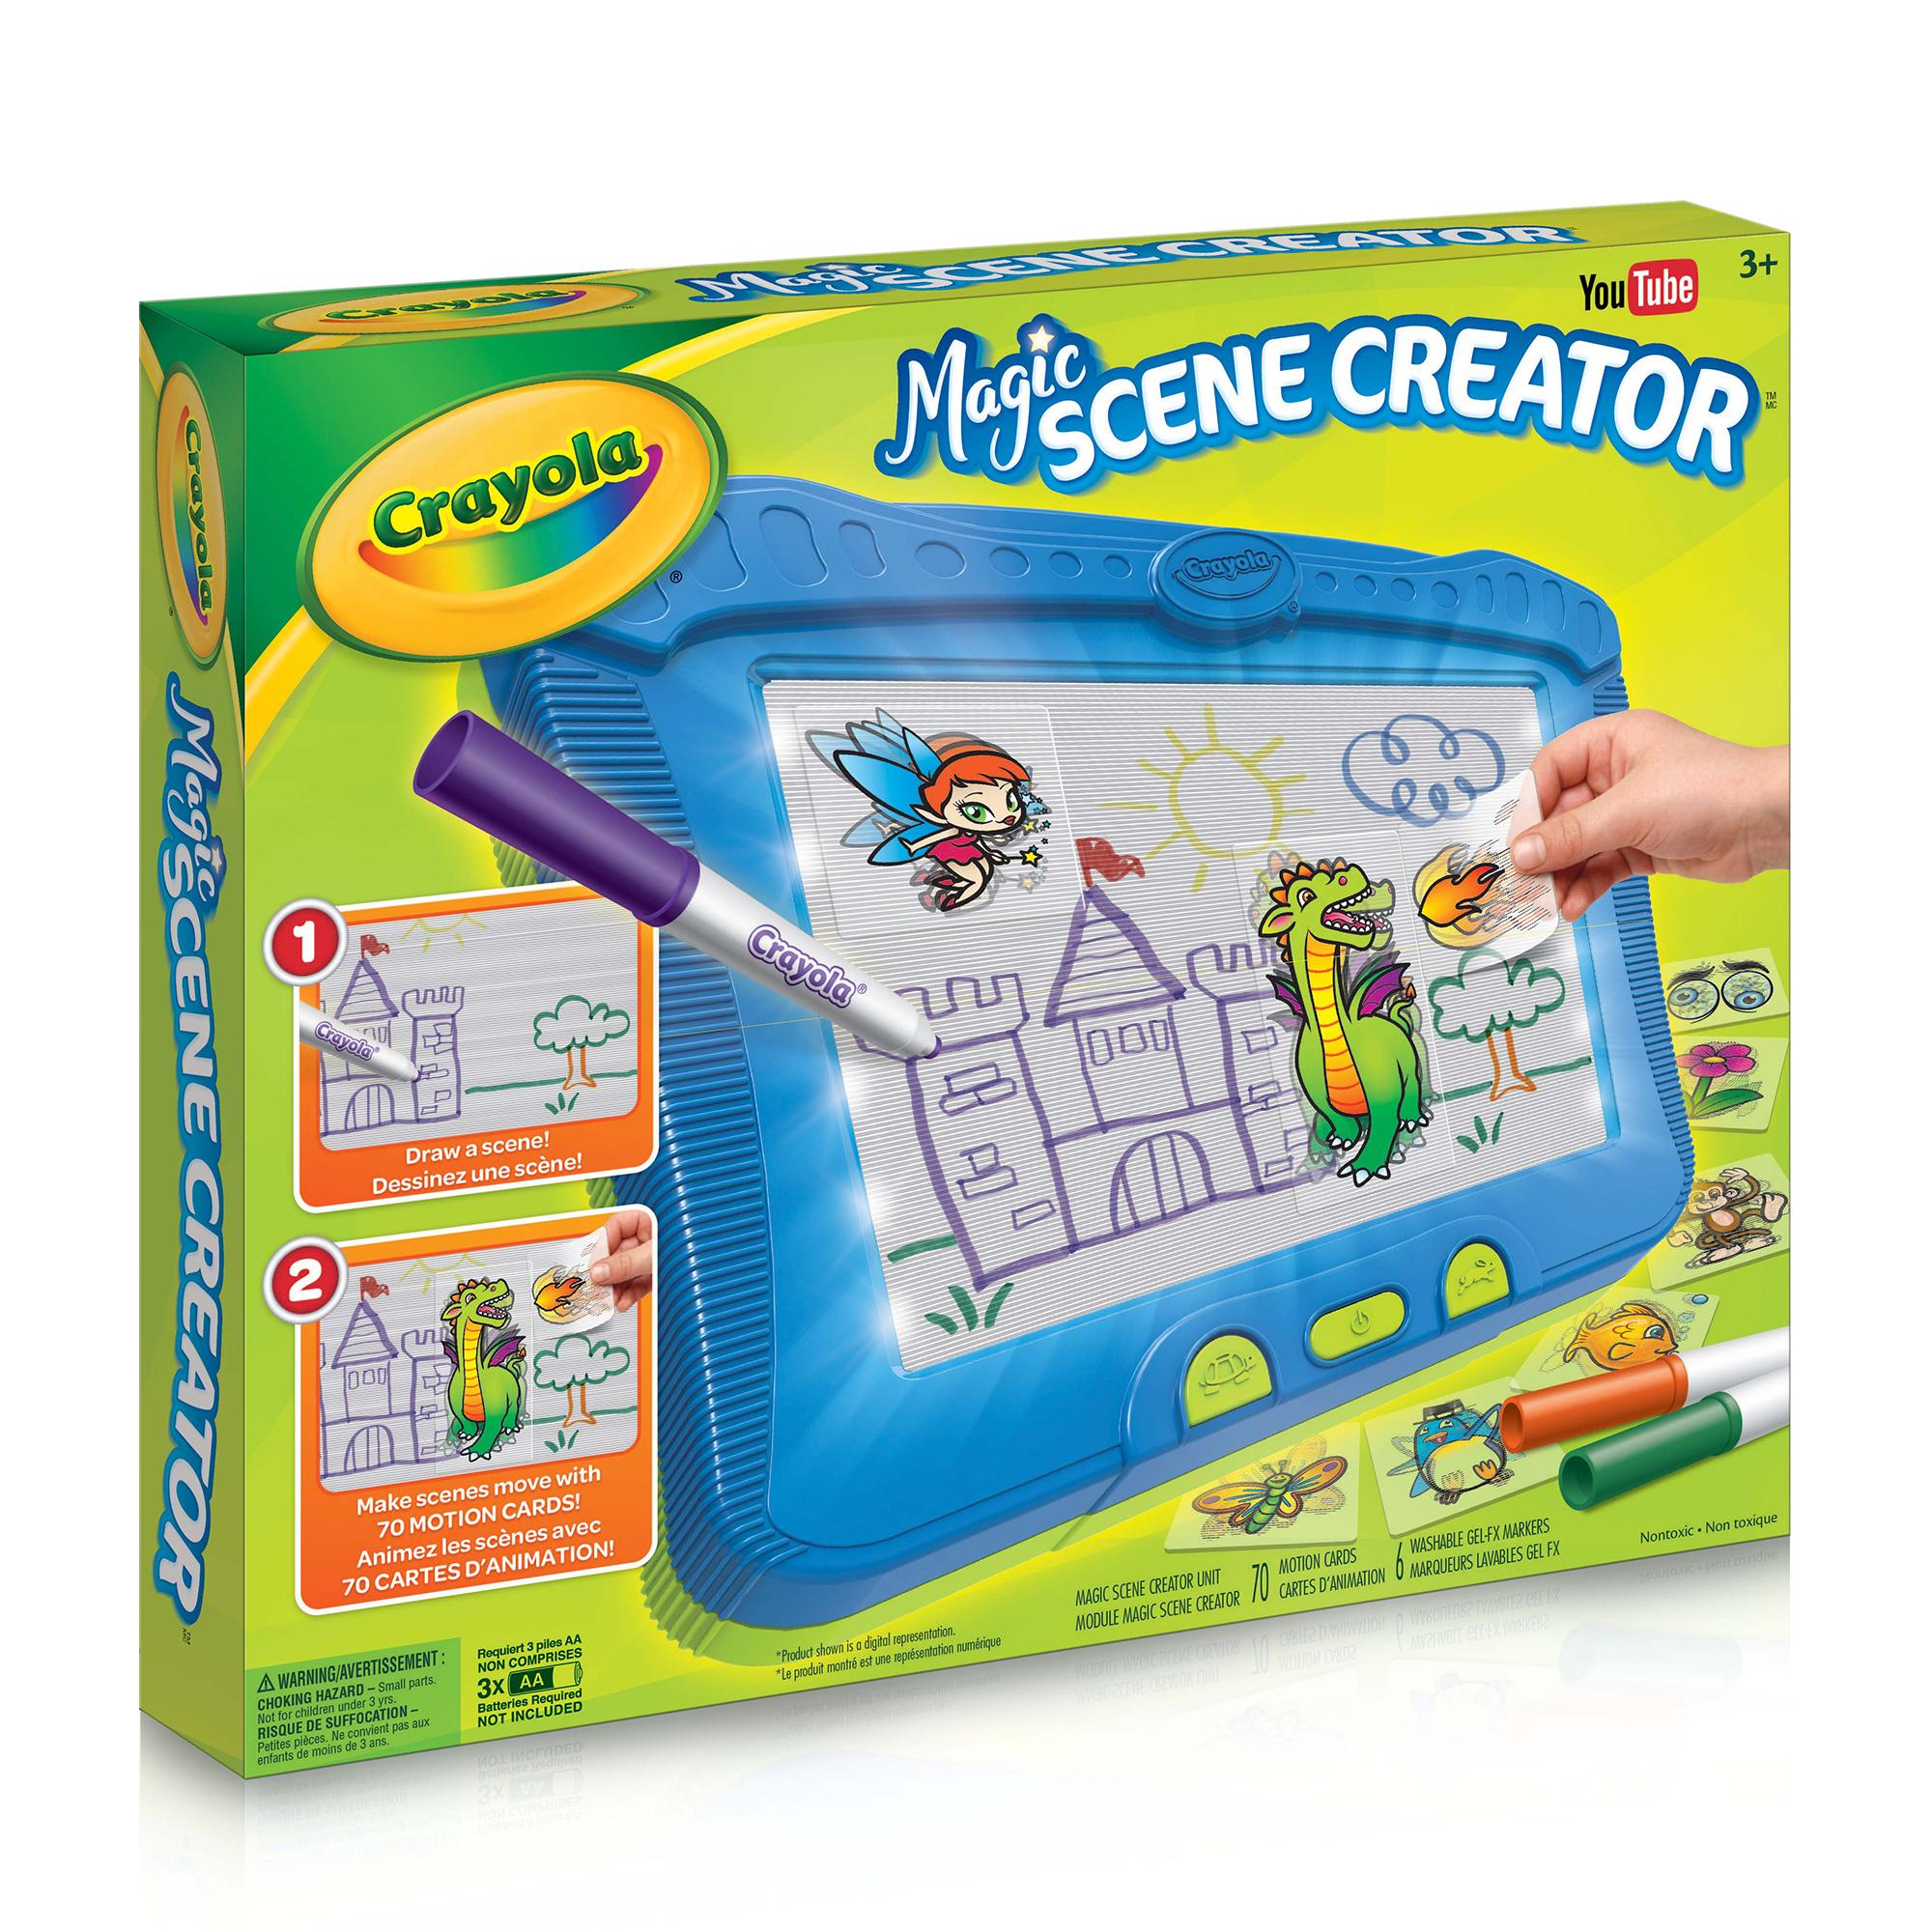 Crayola Magic Scene Creator Drawing Kit for Kids Creative Toys